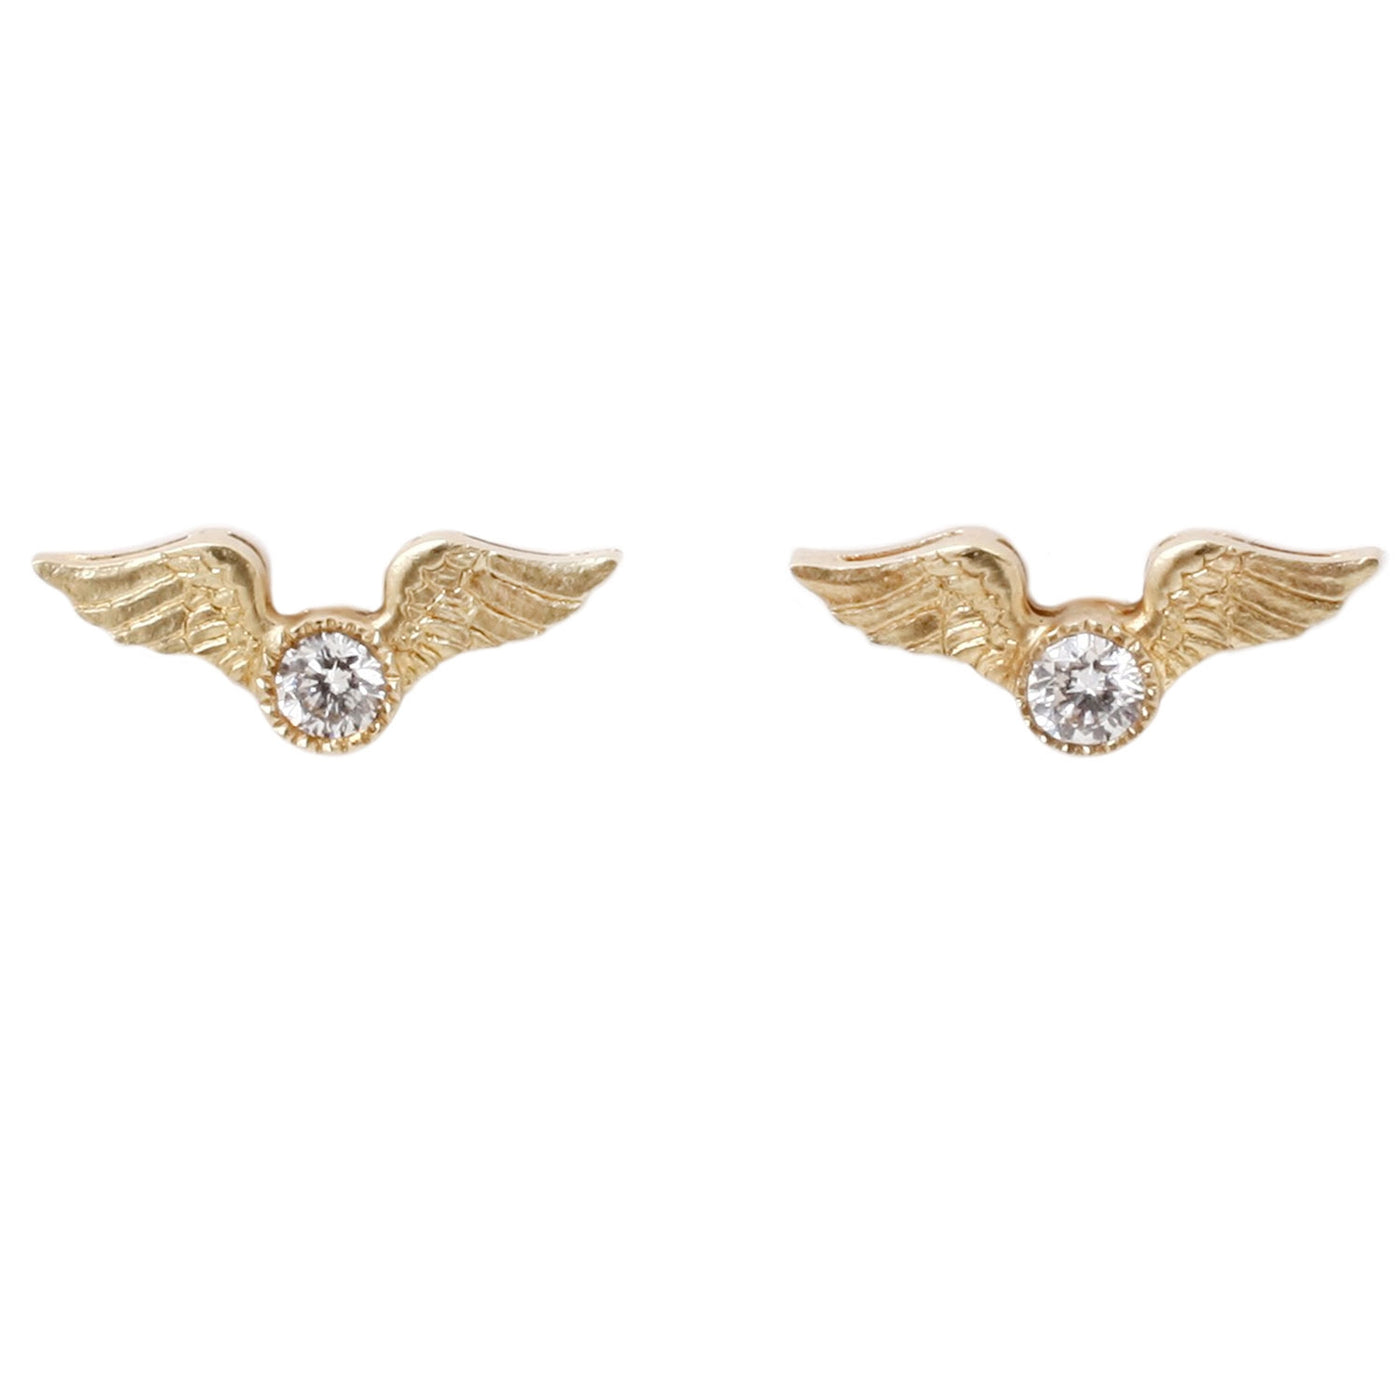 Anthony Lent Flying Diamond Studs. 18k yellow gold with white diamond solitaires.